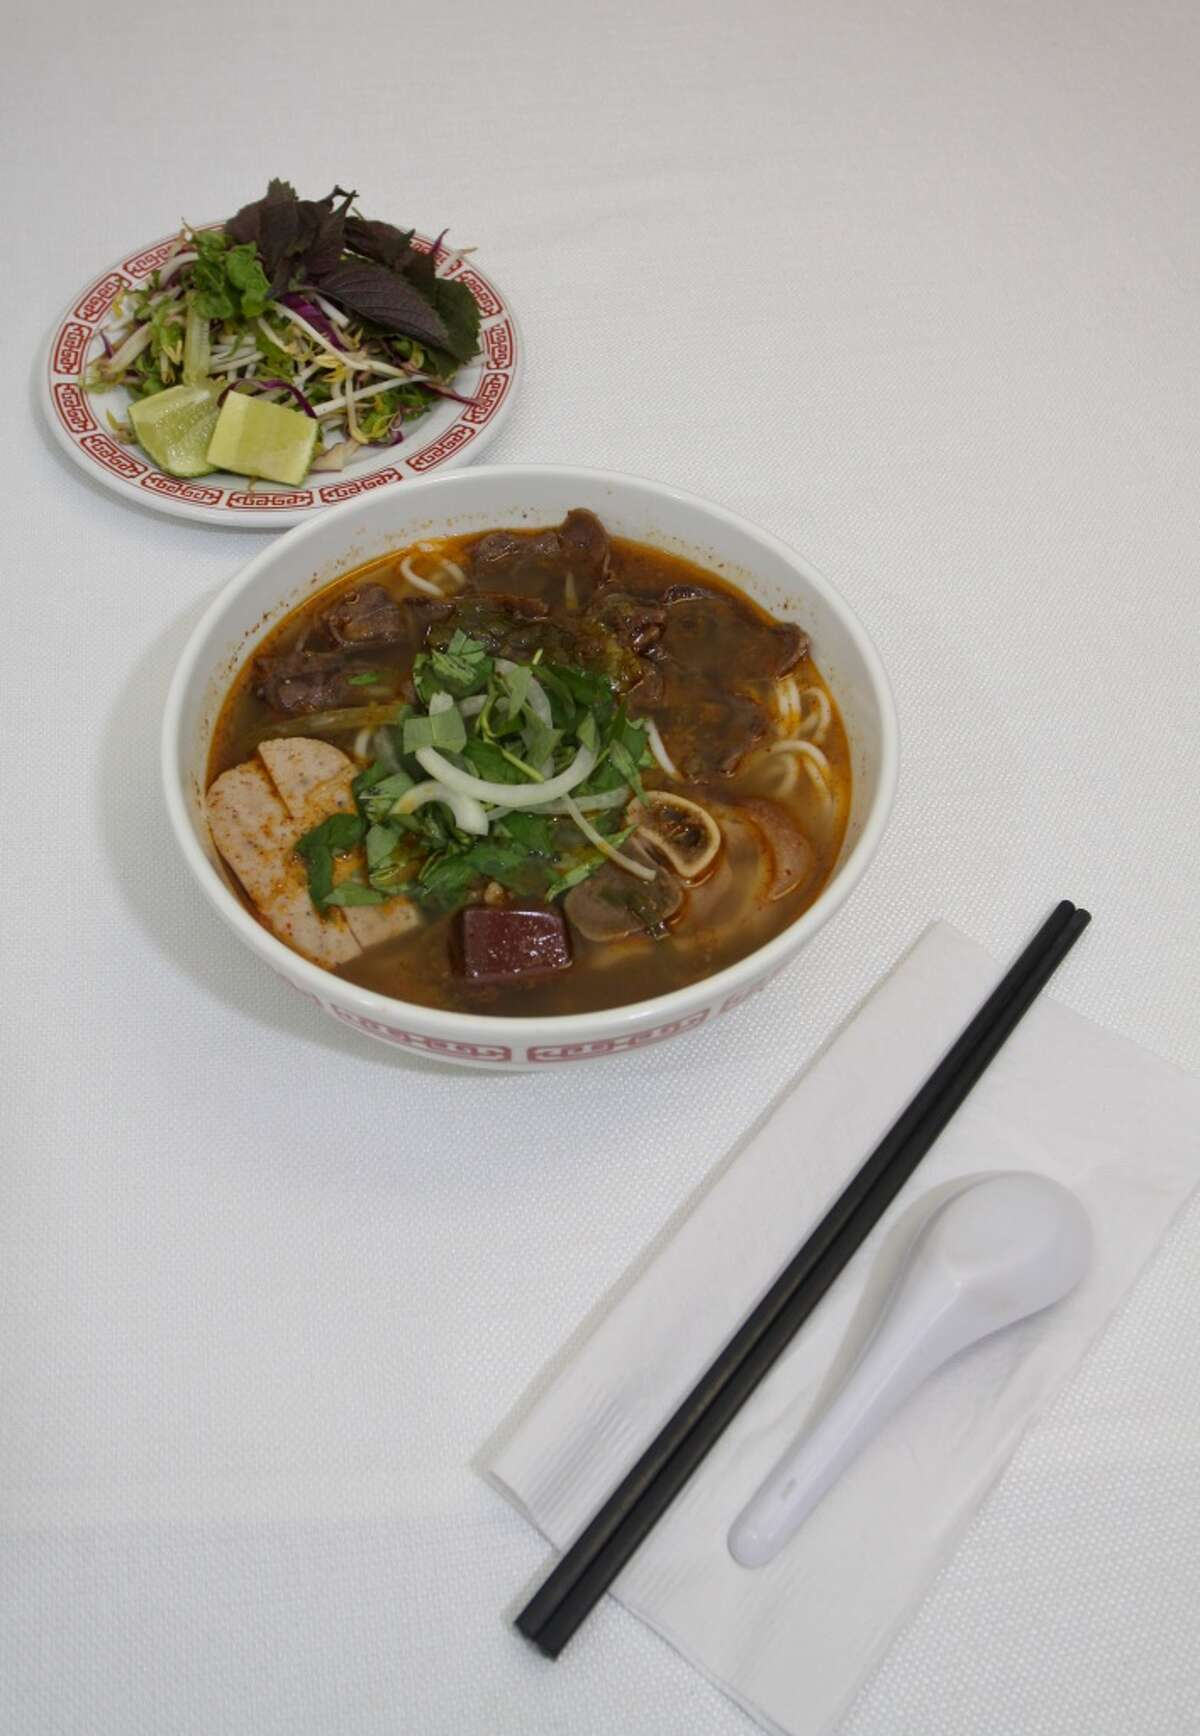 Spicy Lemongrass soup at Cafe TH.